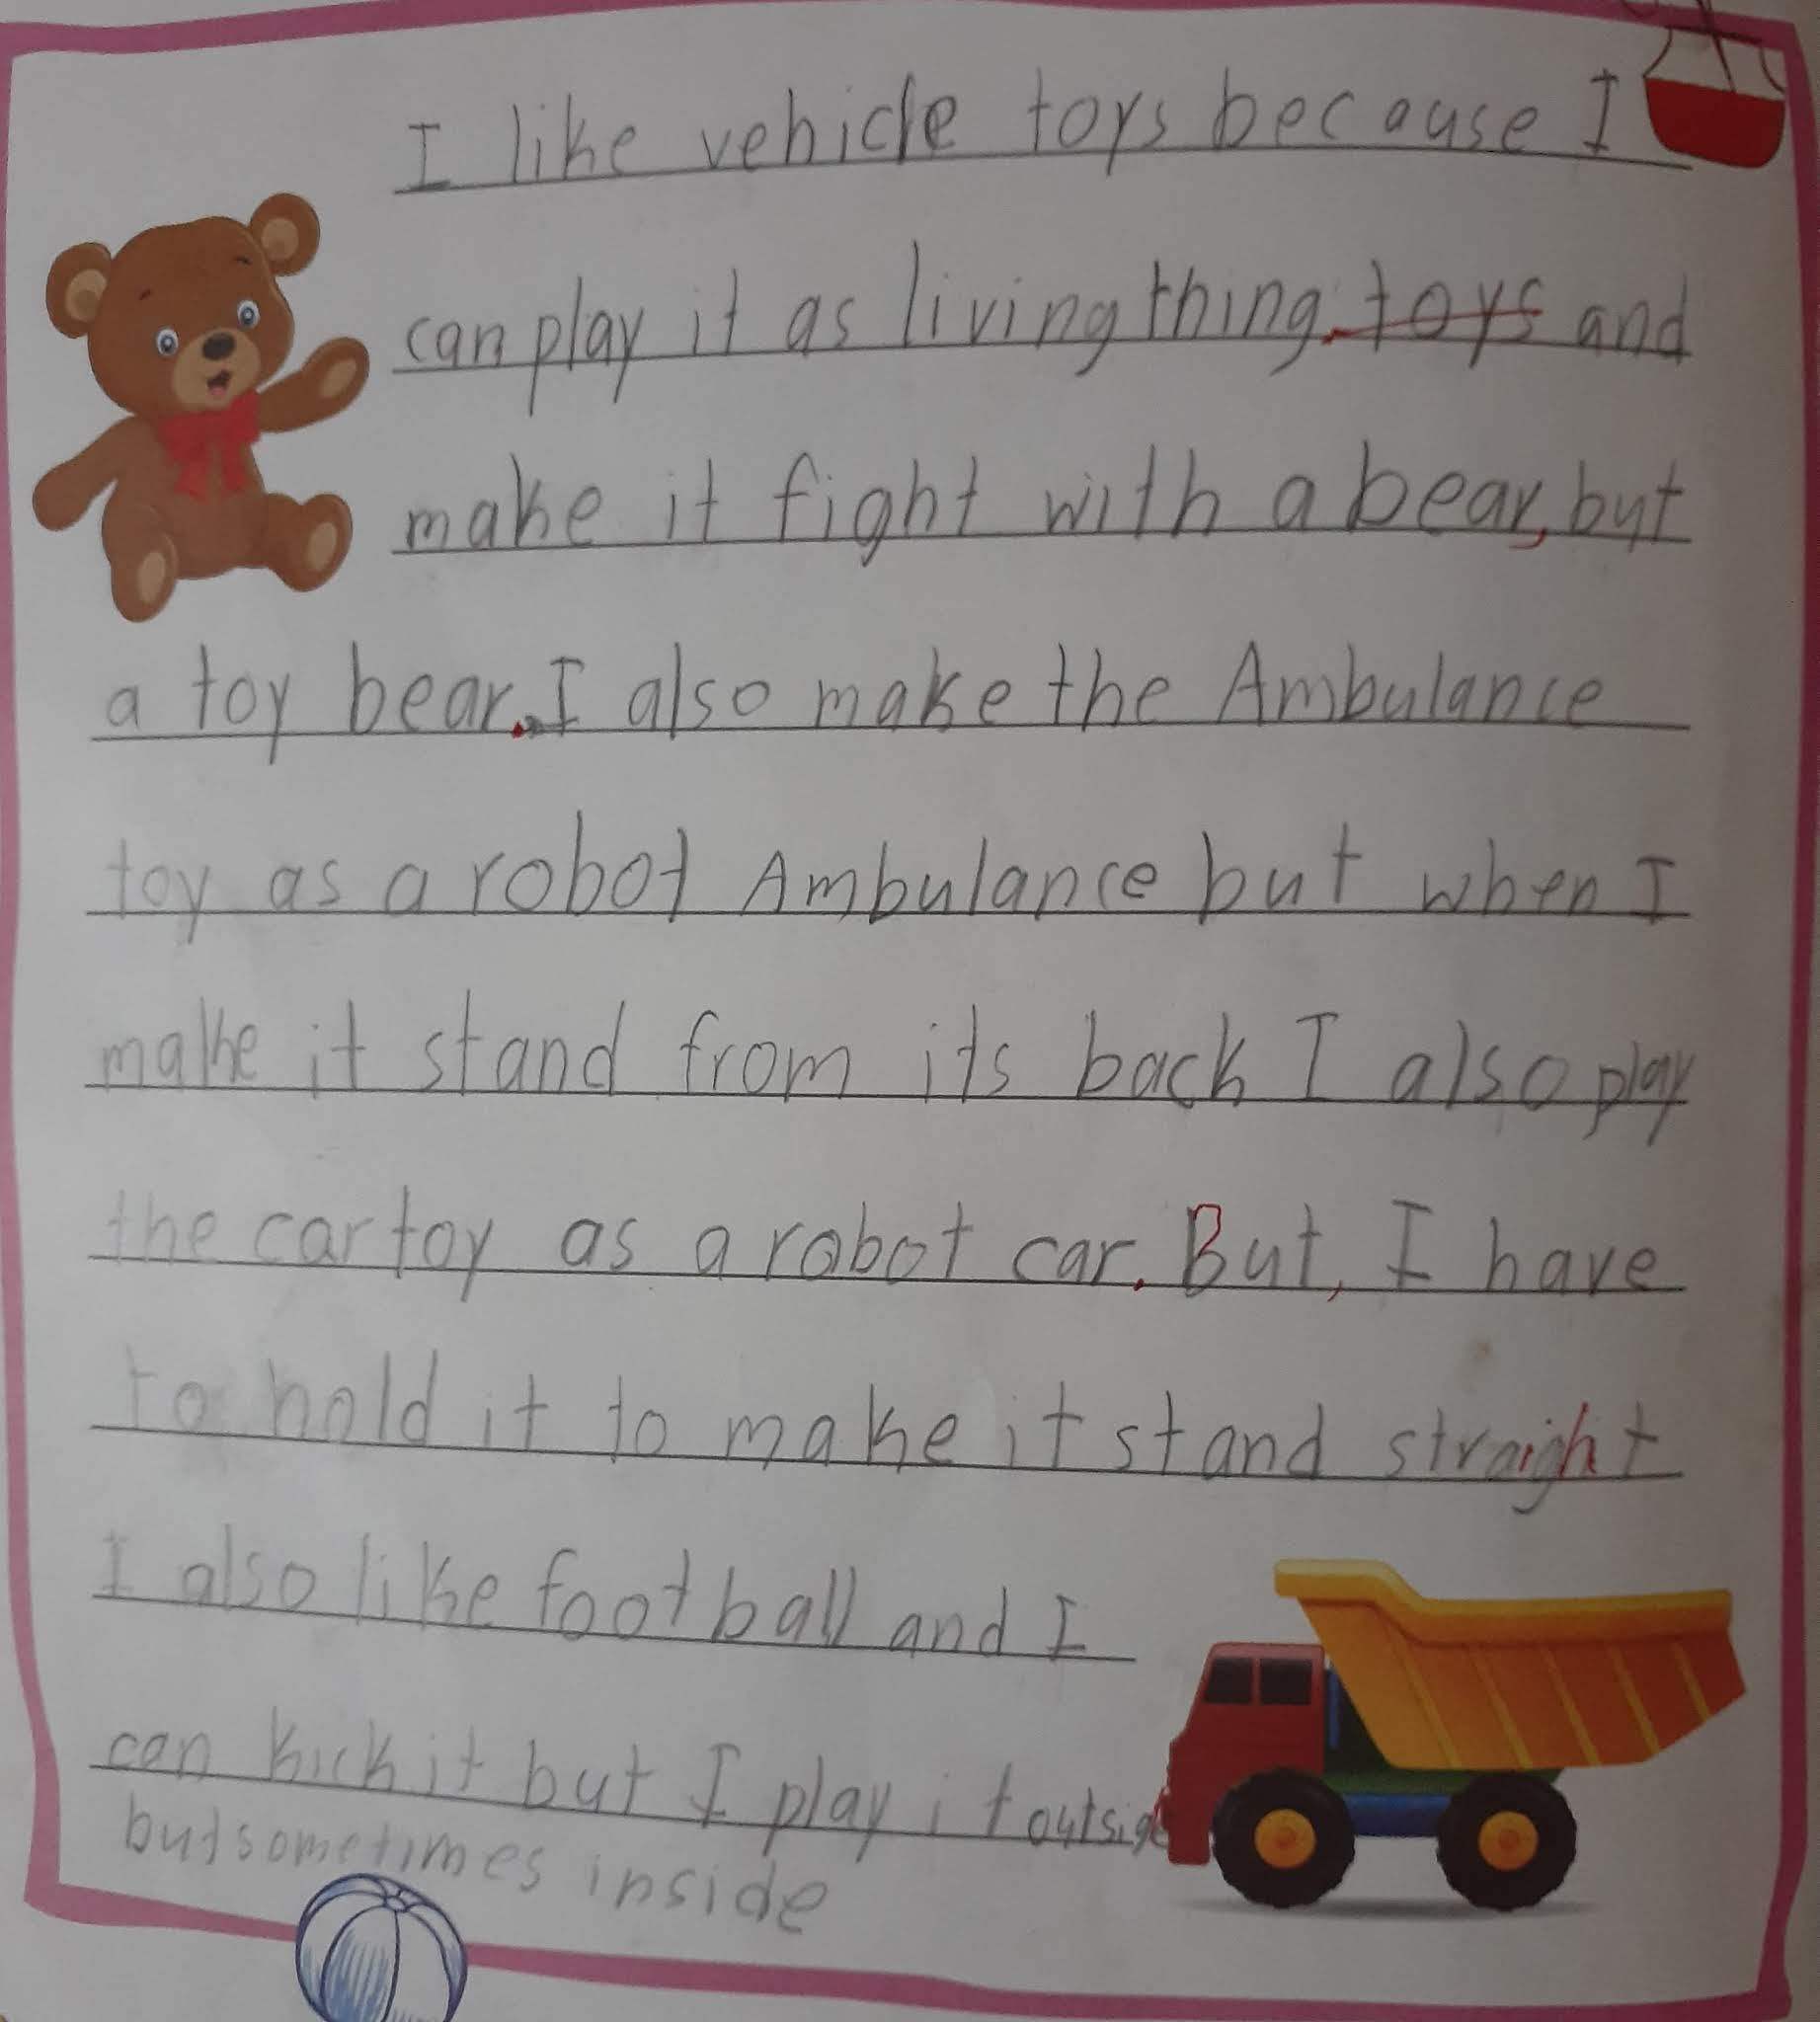 My toys essay for kids pre written essay on the three principles of fitness fit